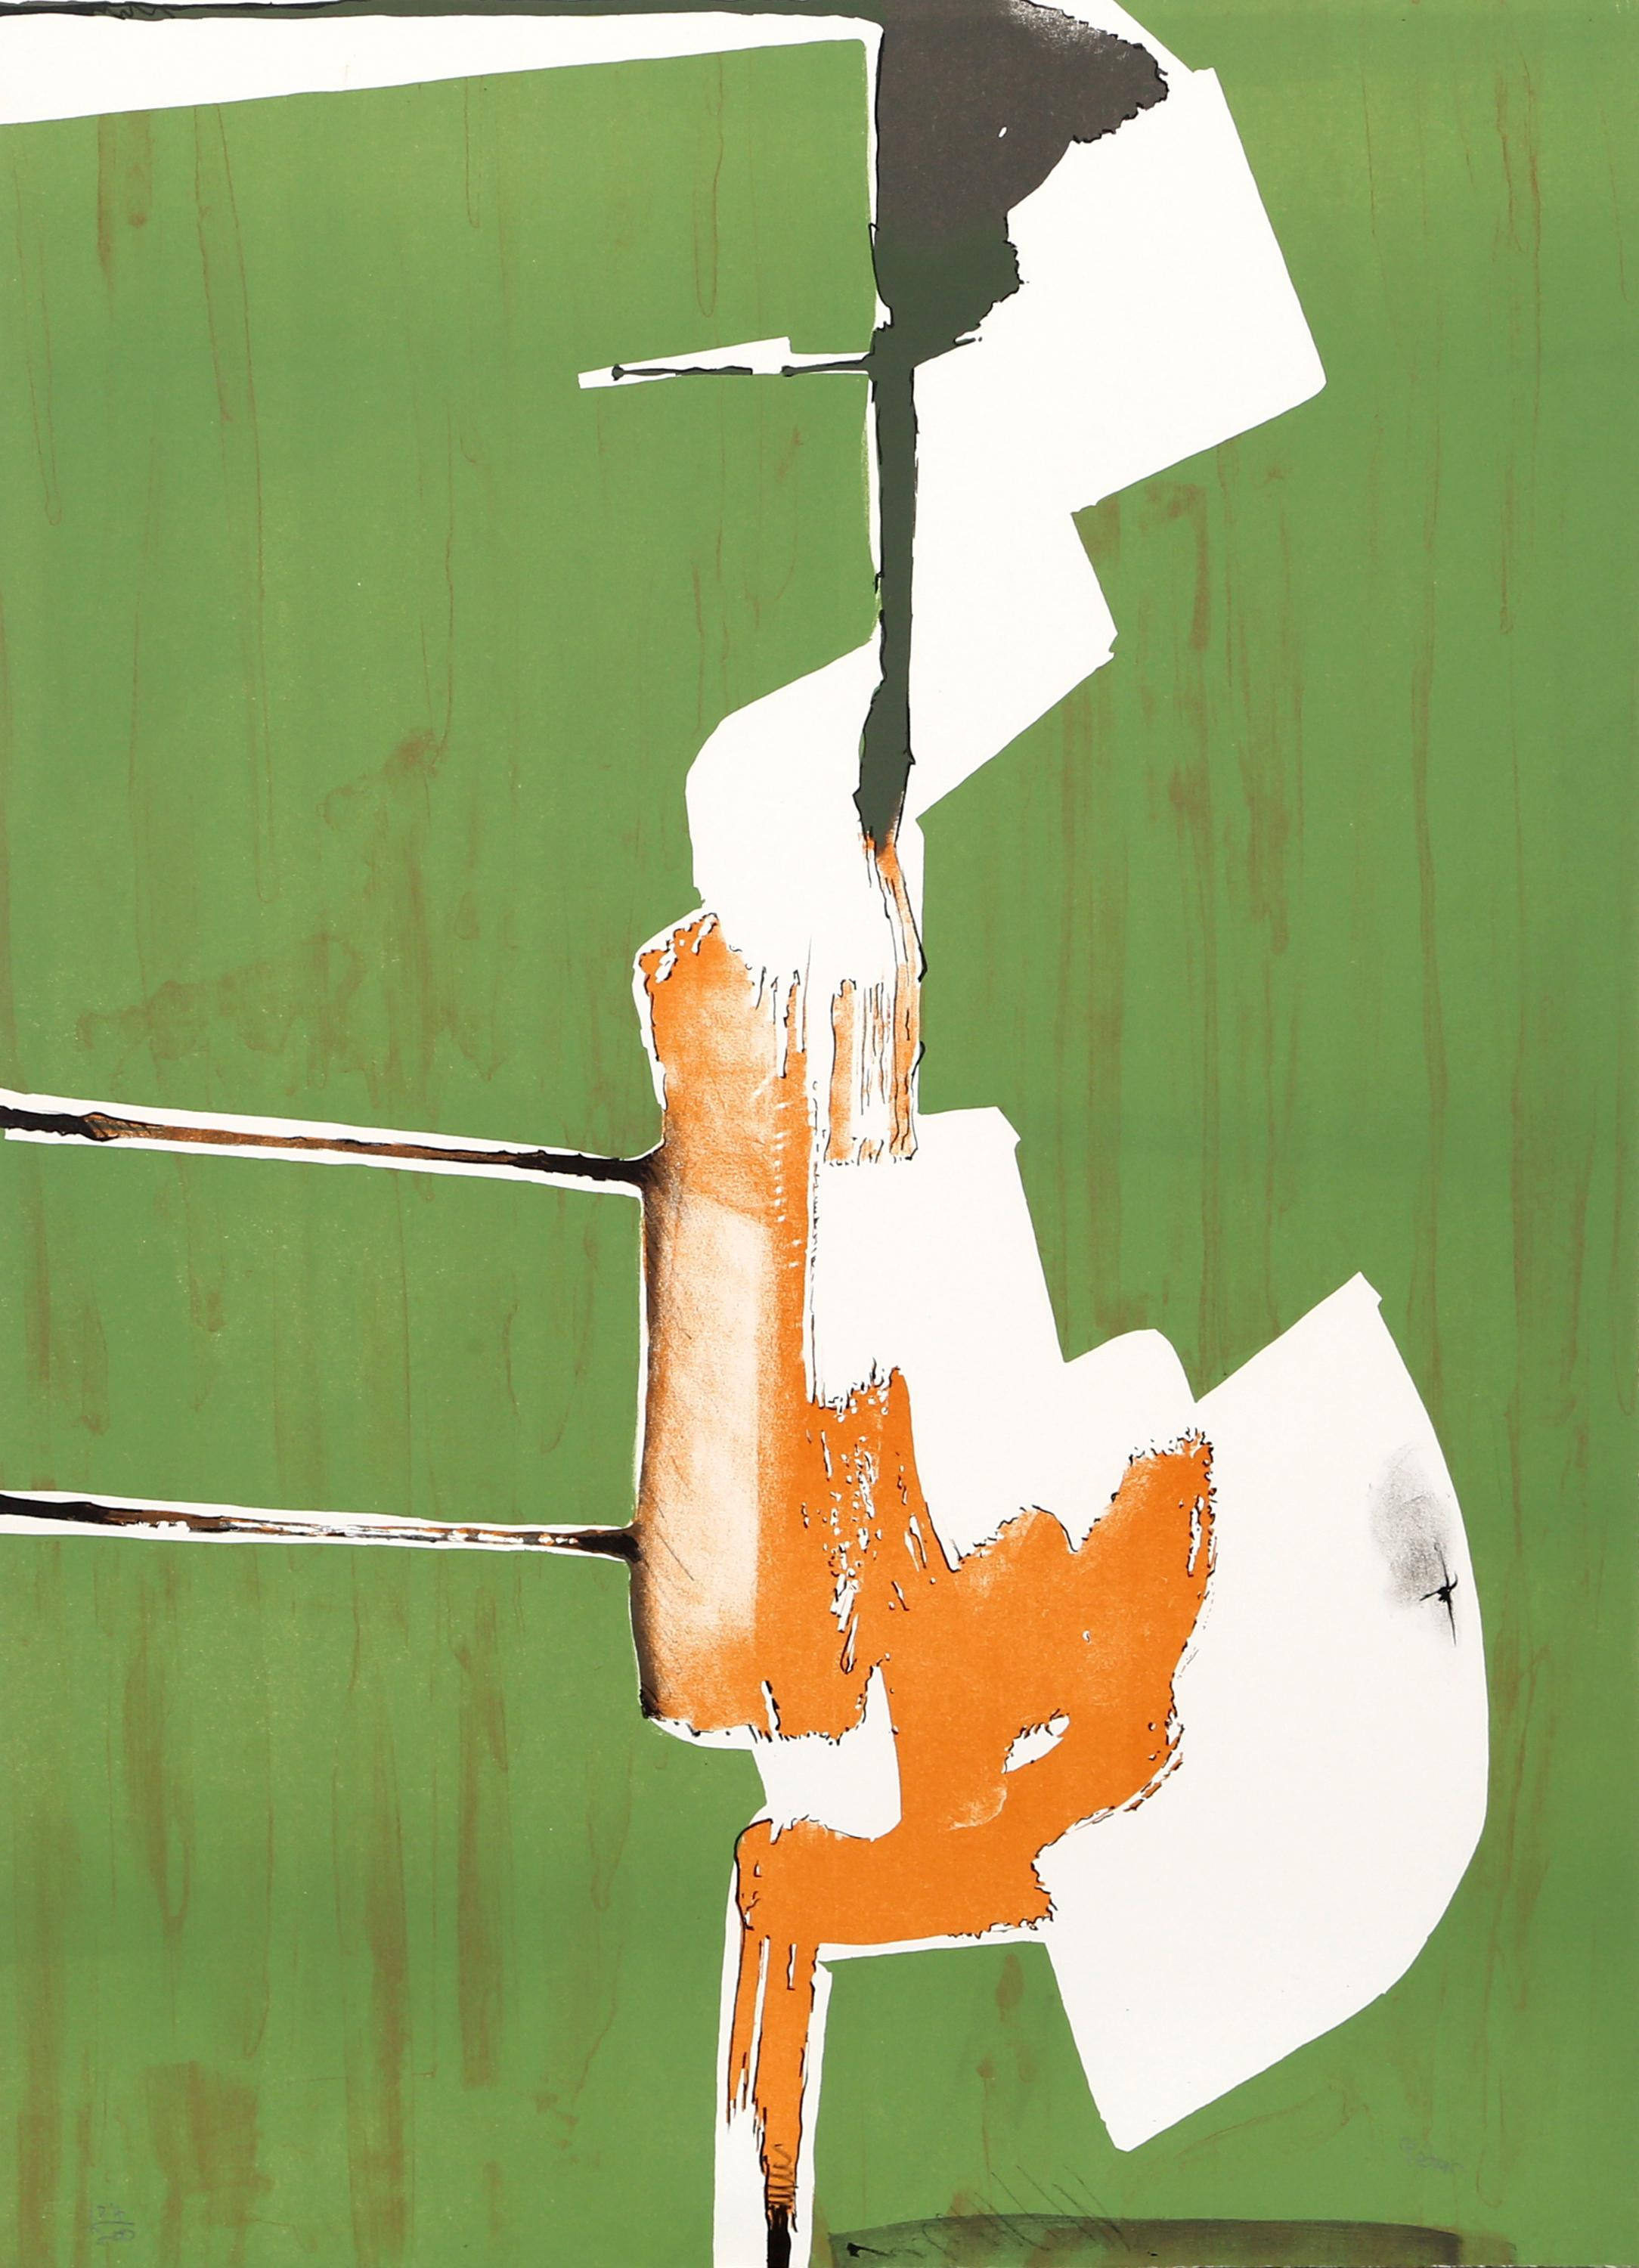 Dimitri Petrov, Abstract Handstand, Lithograph